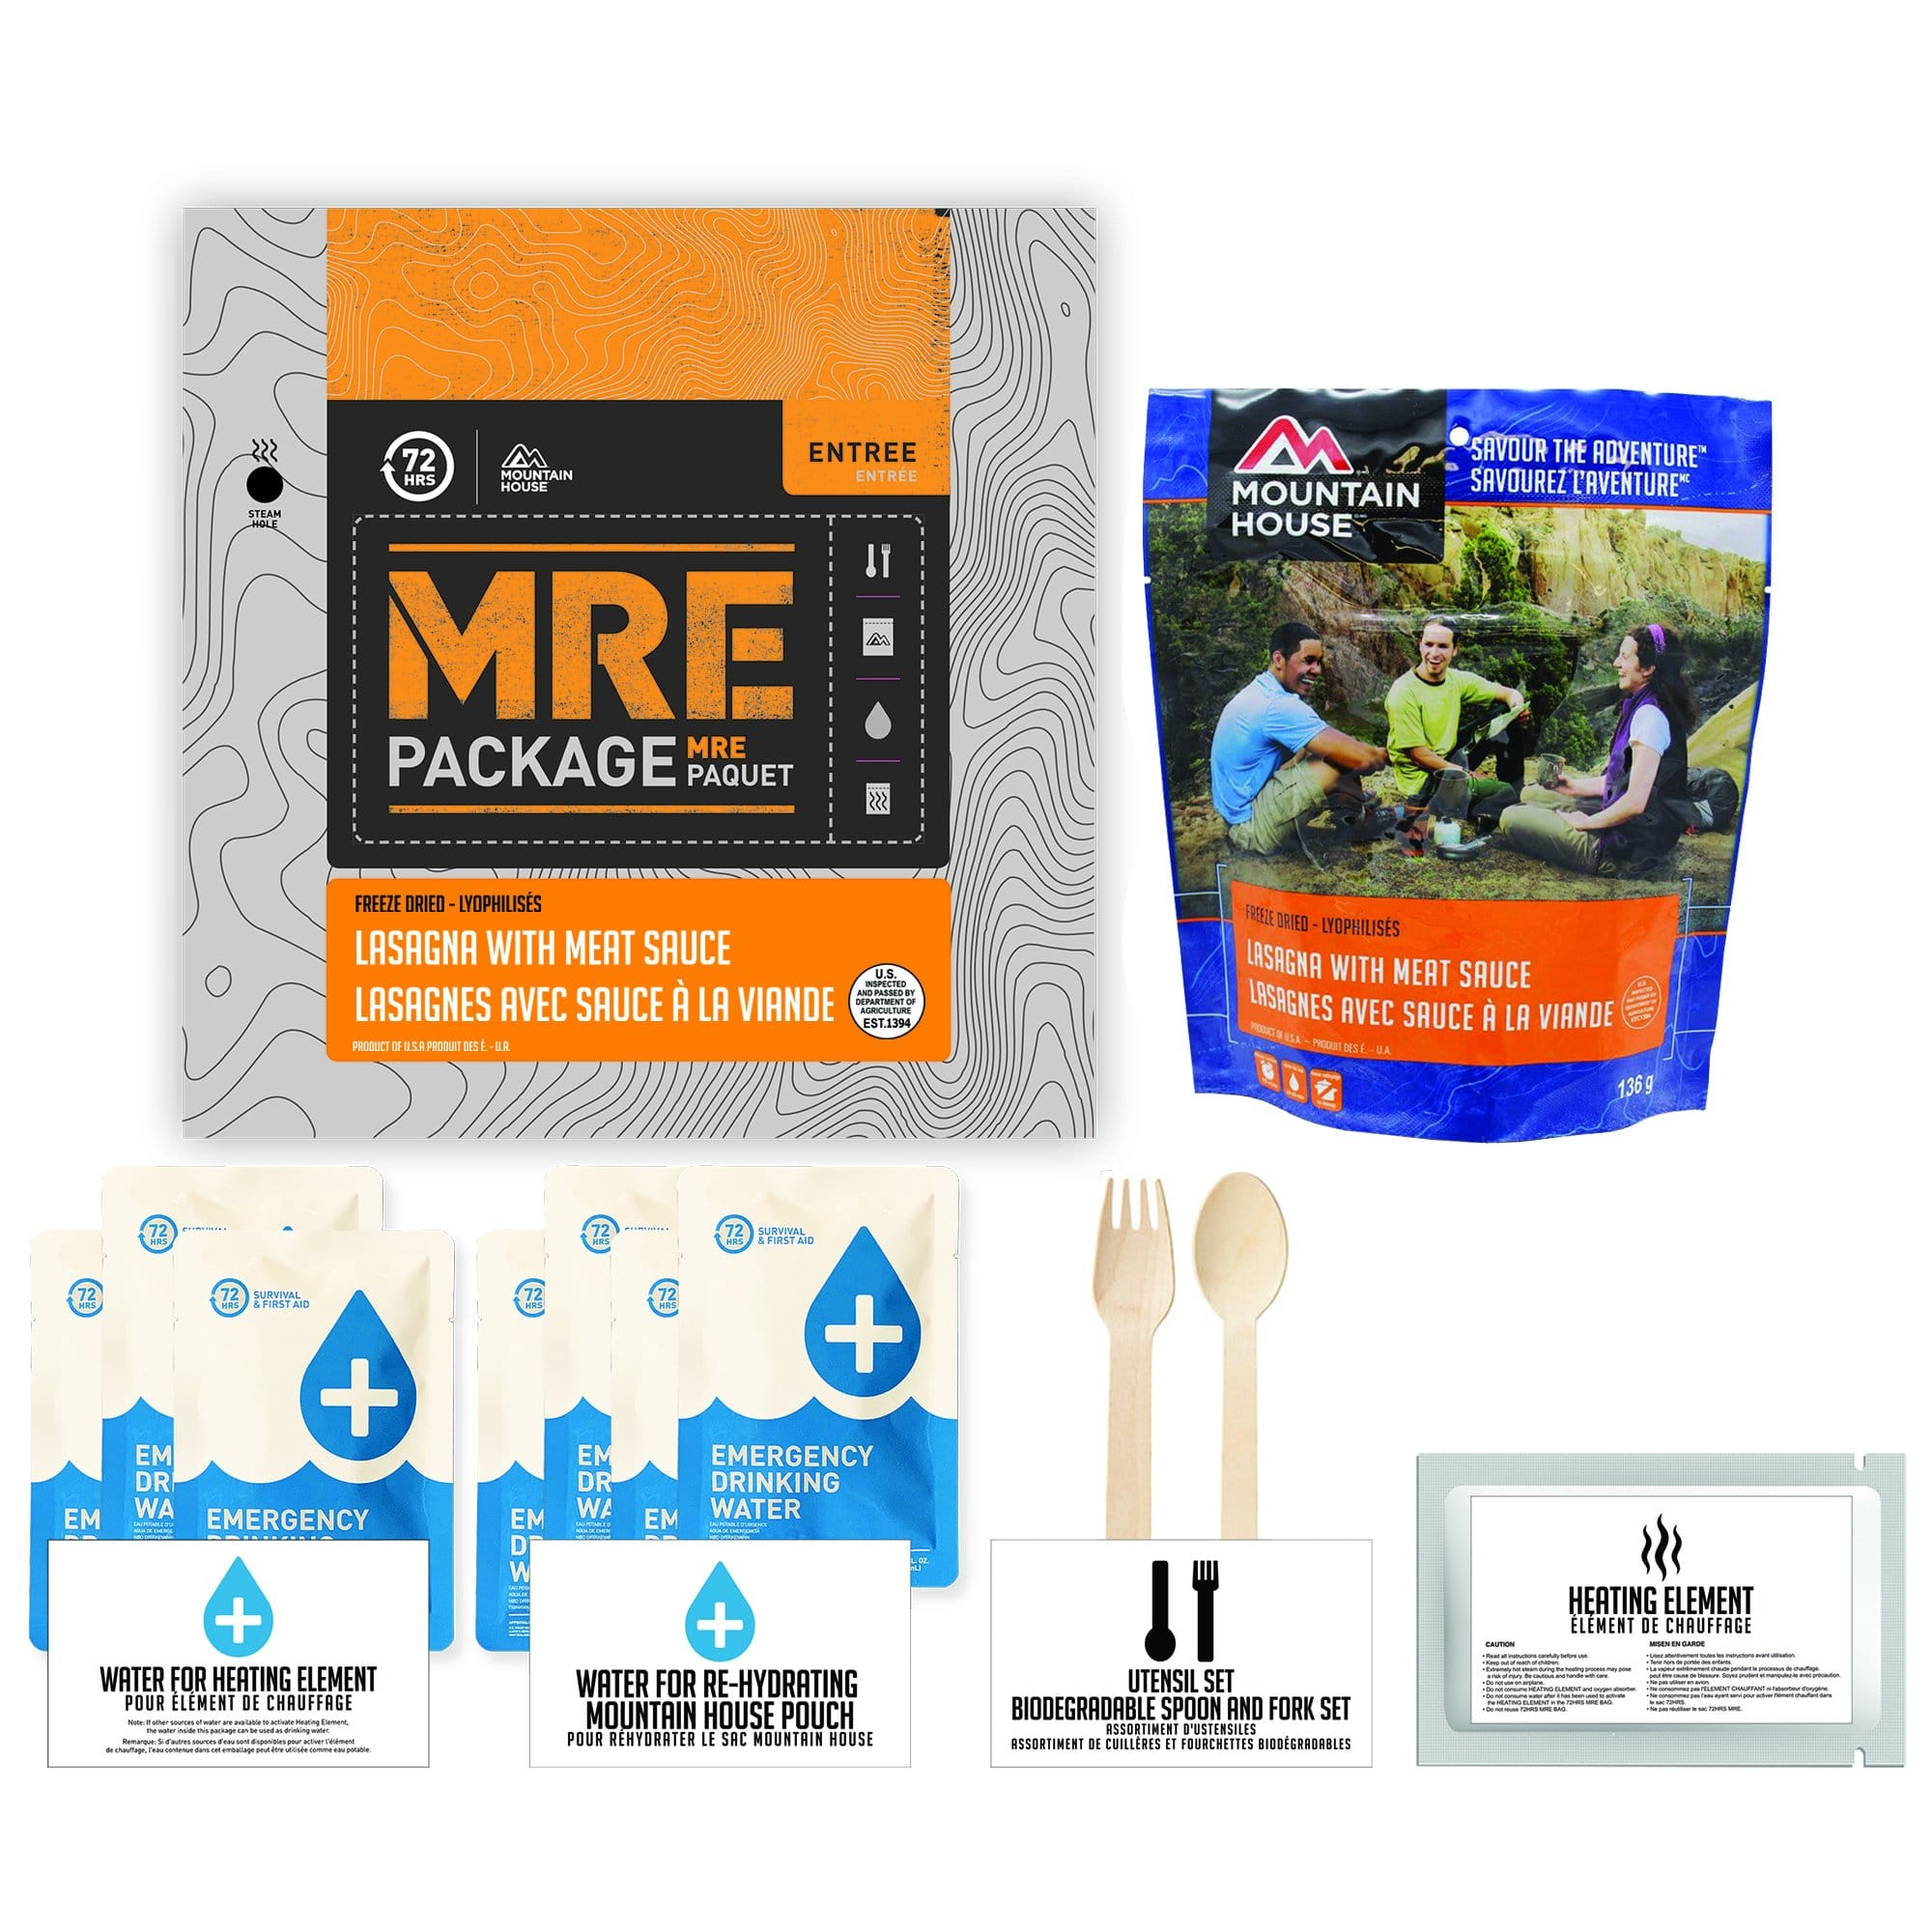 72 HOURS MRE Package Mountain House Lasagna with Meat Sauce Pouch - Emergency Food Pack